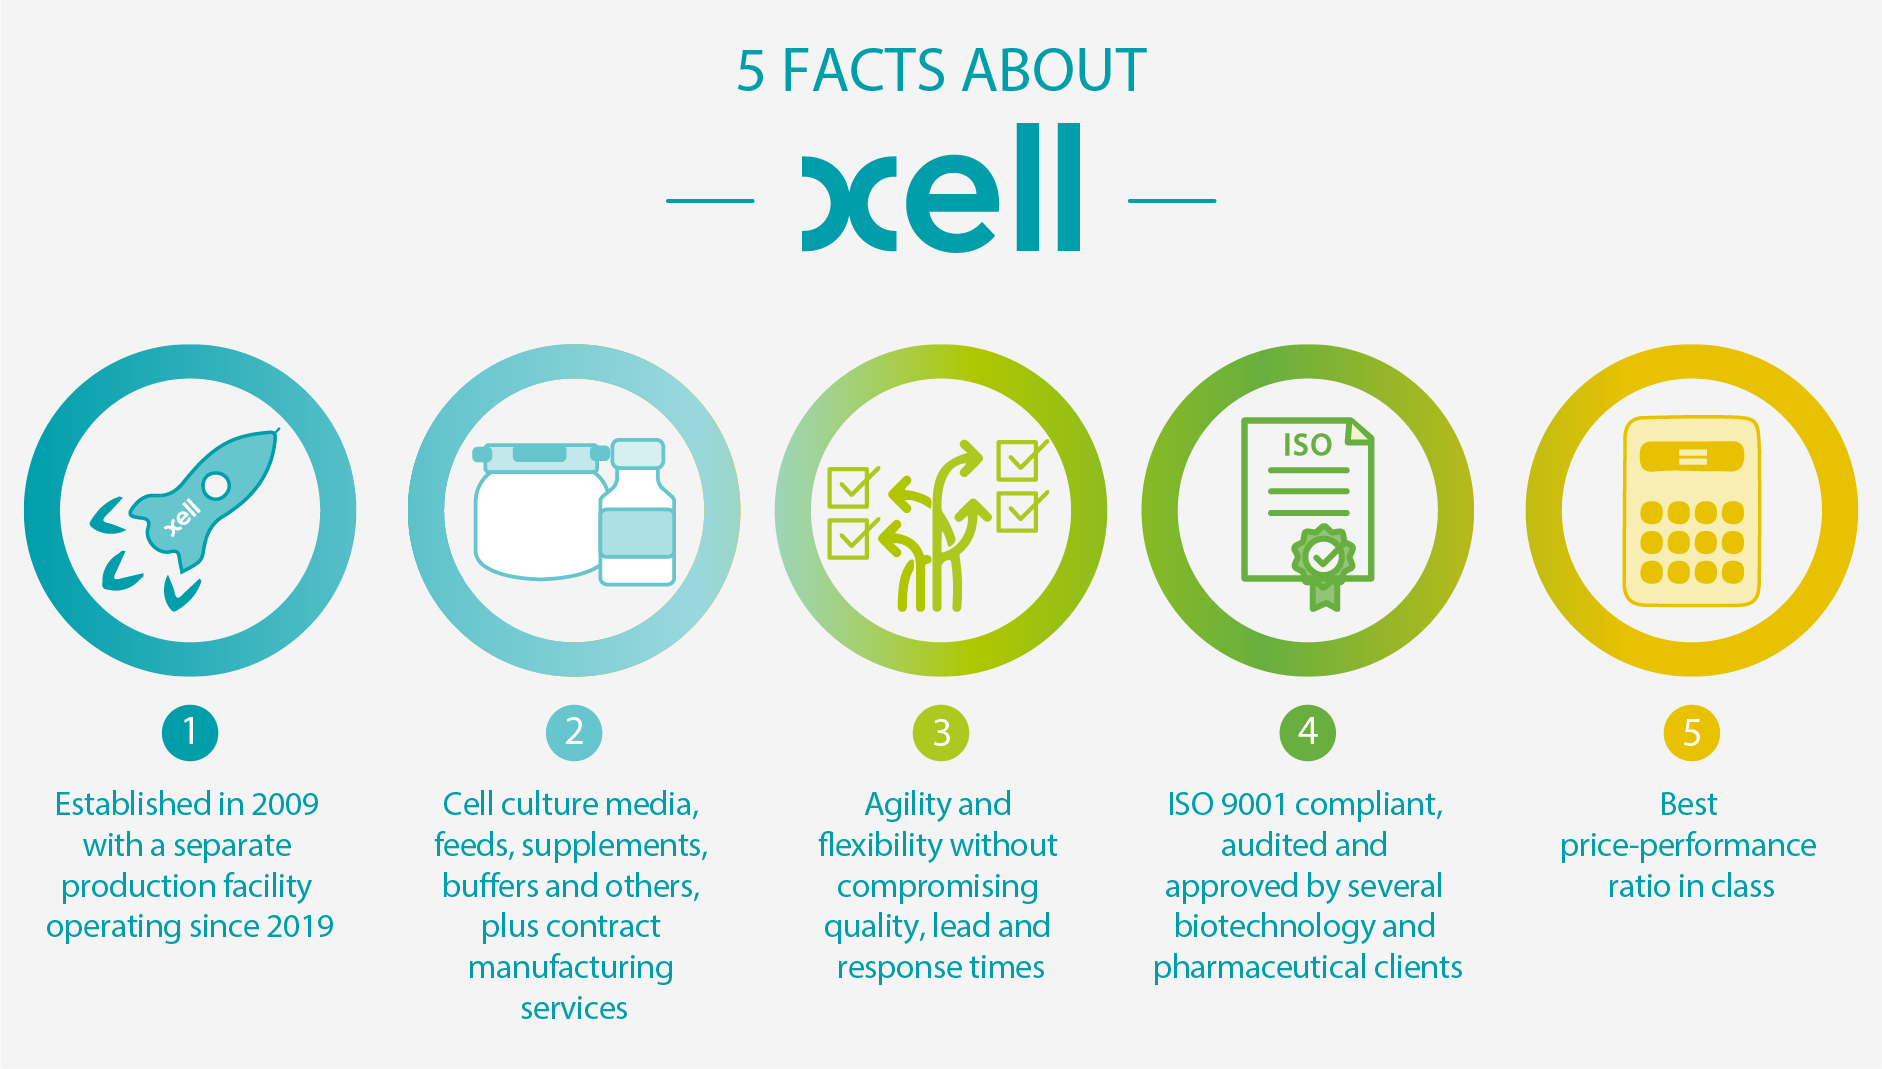 5 facts about Xell